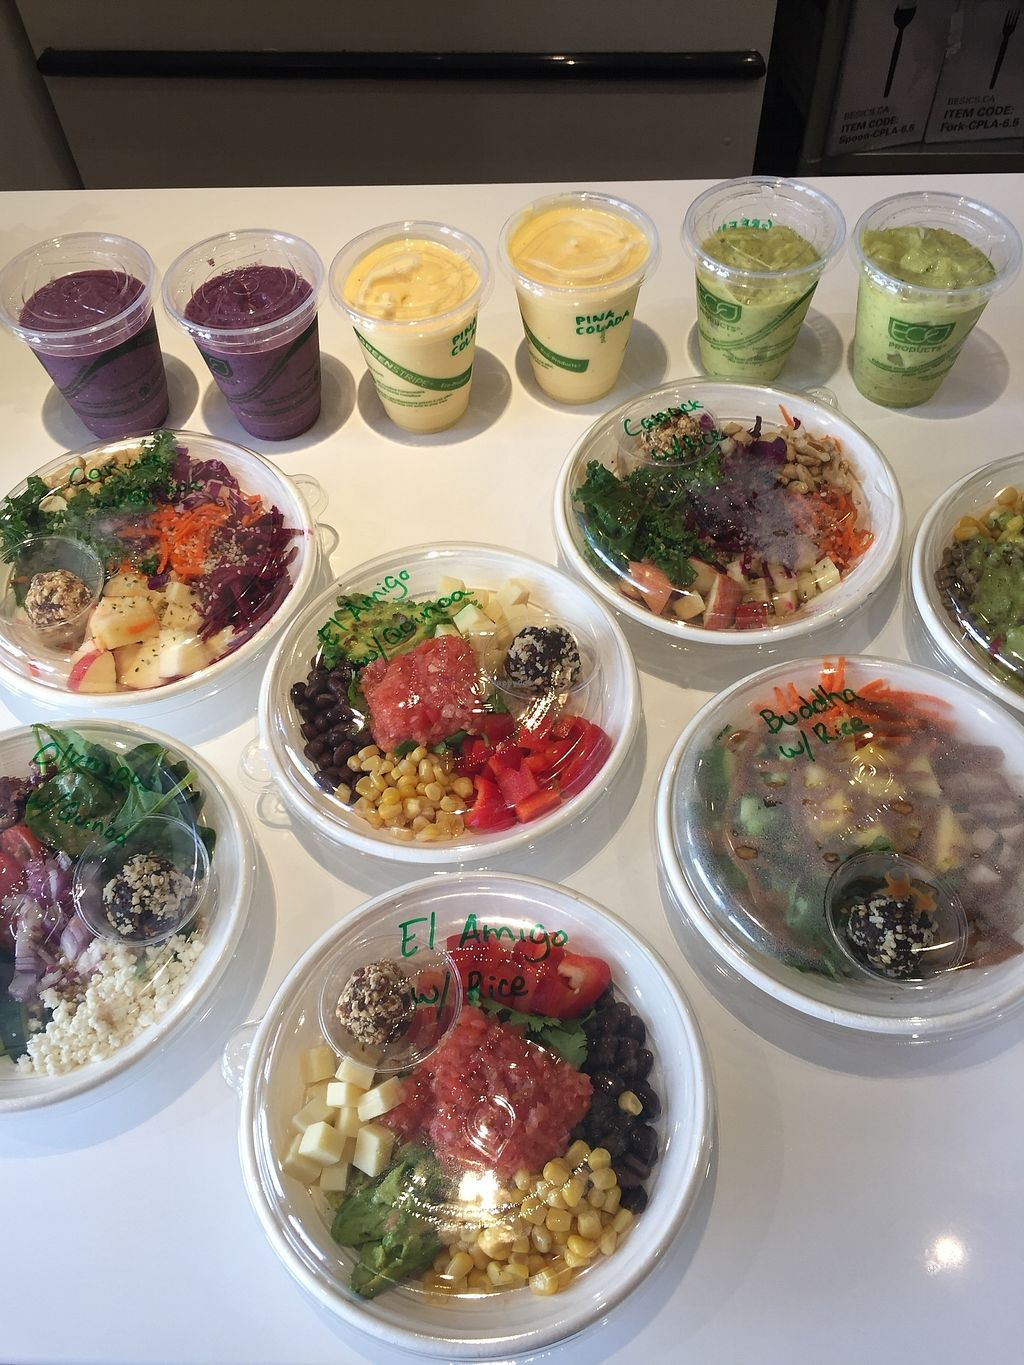 """Photo of The Pulp  by <a href=""""/members/profile/TrenaHough"""">TrenaHough</a> <br/>Serving delicious rice and quinoa bowl, smoothies and  cold pressed juice <br/> July 10, 2017  - <a href='/contact/abuse/image/95700/278487'>Report</a>"""